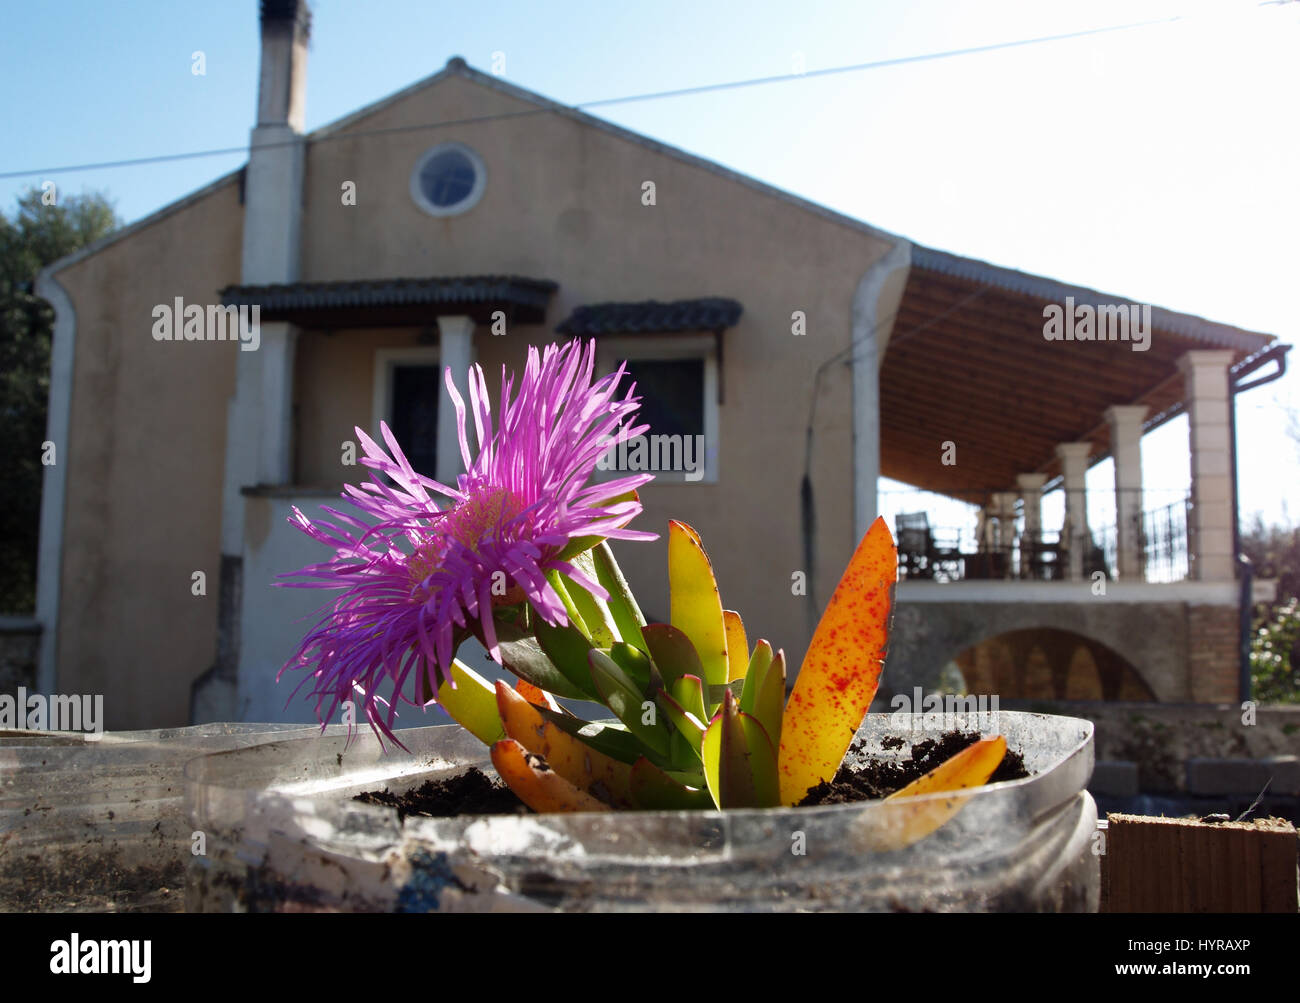 Carpobrotus plant growing in container in Greek garden Stock ... on asparagus fern care, indigo plant care, jelly bean plant care, shasta daisy care, tequila plant care, parrot plant care, daylily care, mandevilla plant care, sour diesel plant care, rubber plant care, kiwi plant care, poker plant care, pipe plant care, mint plant care, pearl plant care, monkey plant care, balloon plant care, frost plant care, stick plant care, sensitive plant care,